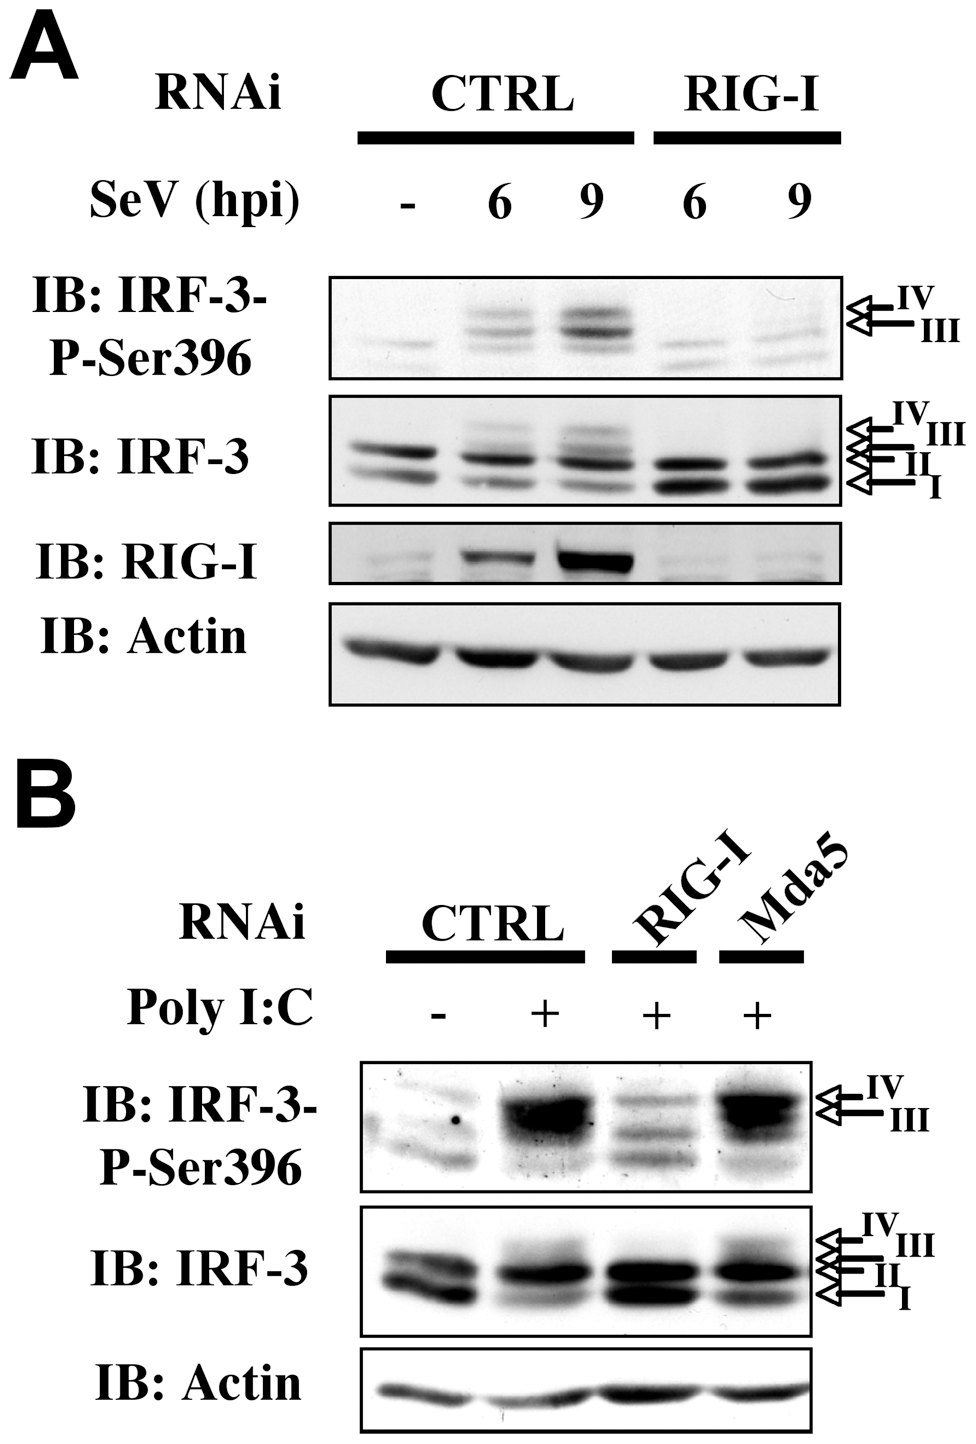 RIG-I is essential for SeV-induced and sheared poly I:C-induced IRF-3 activation.